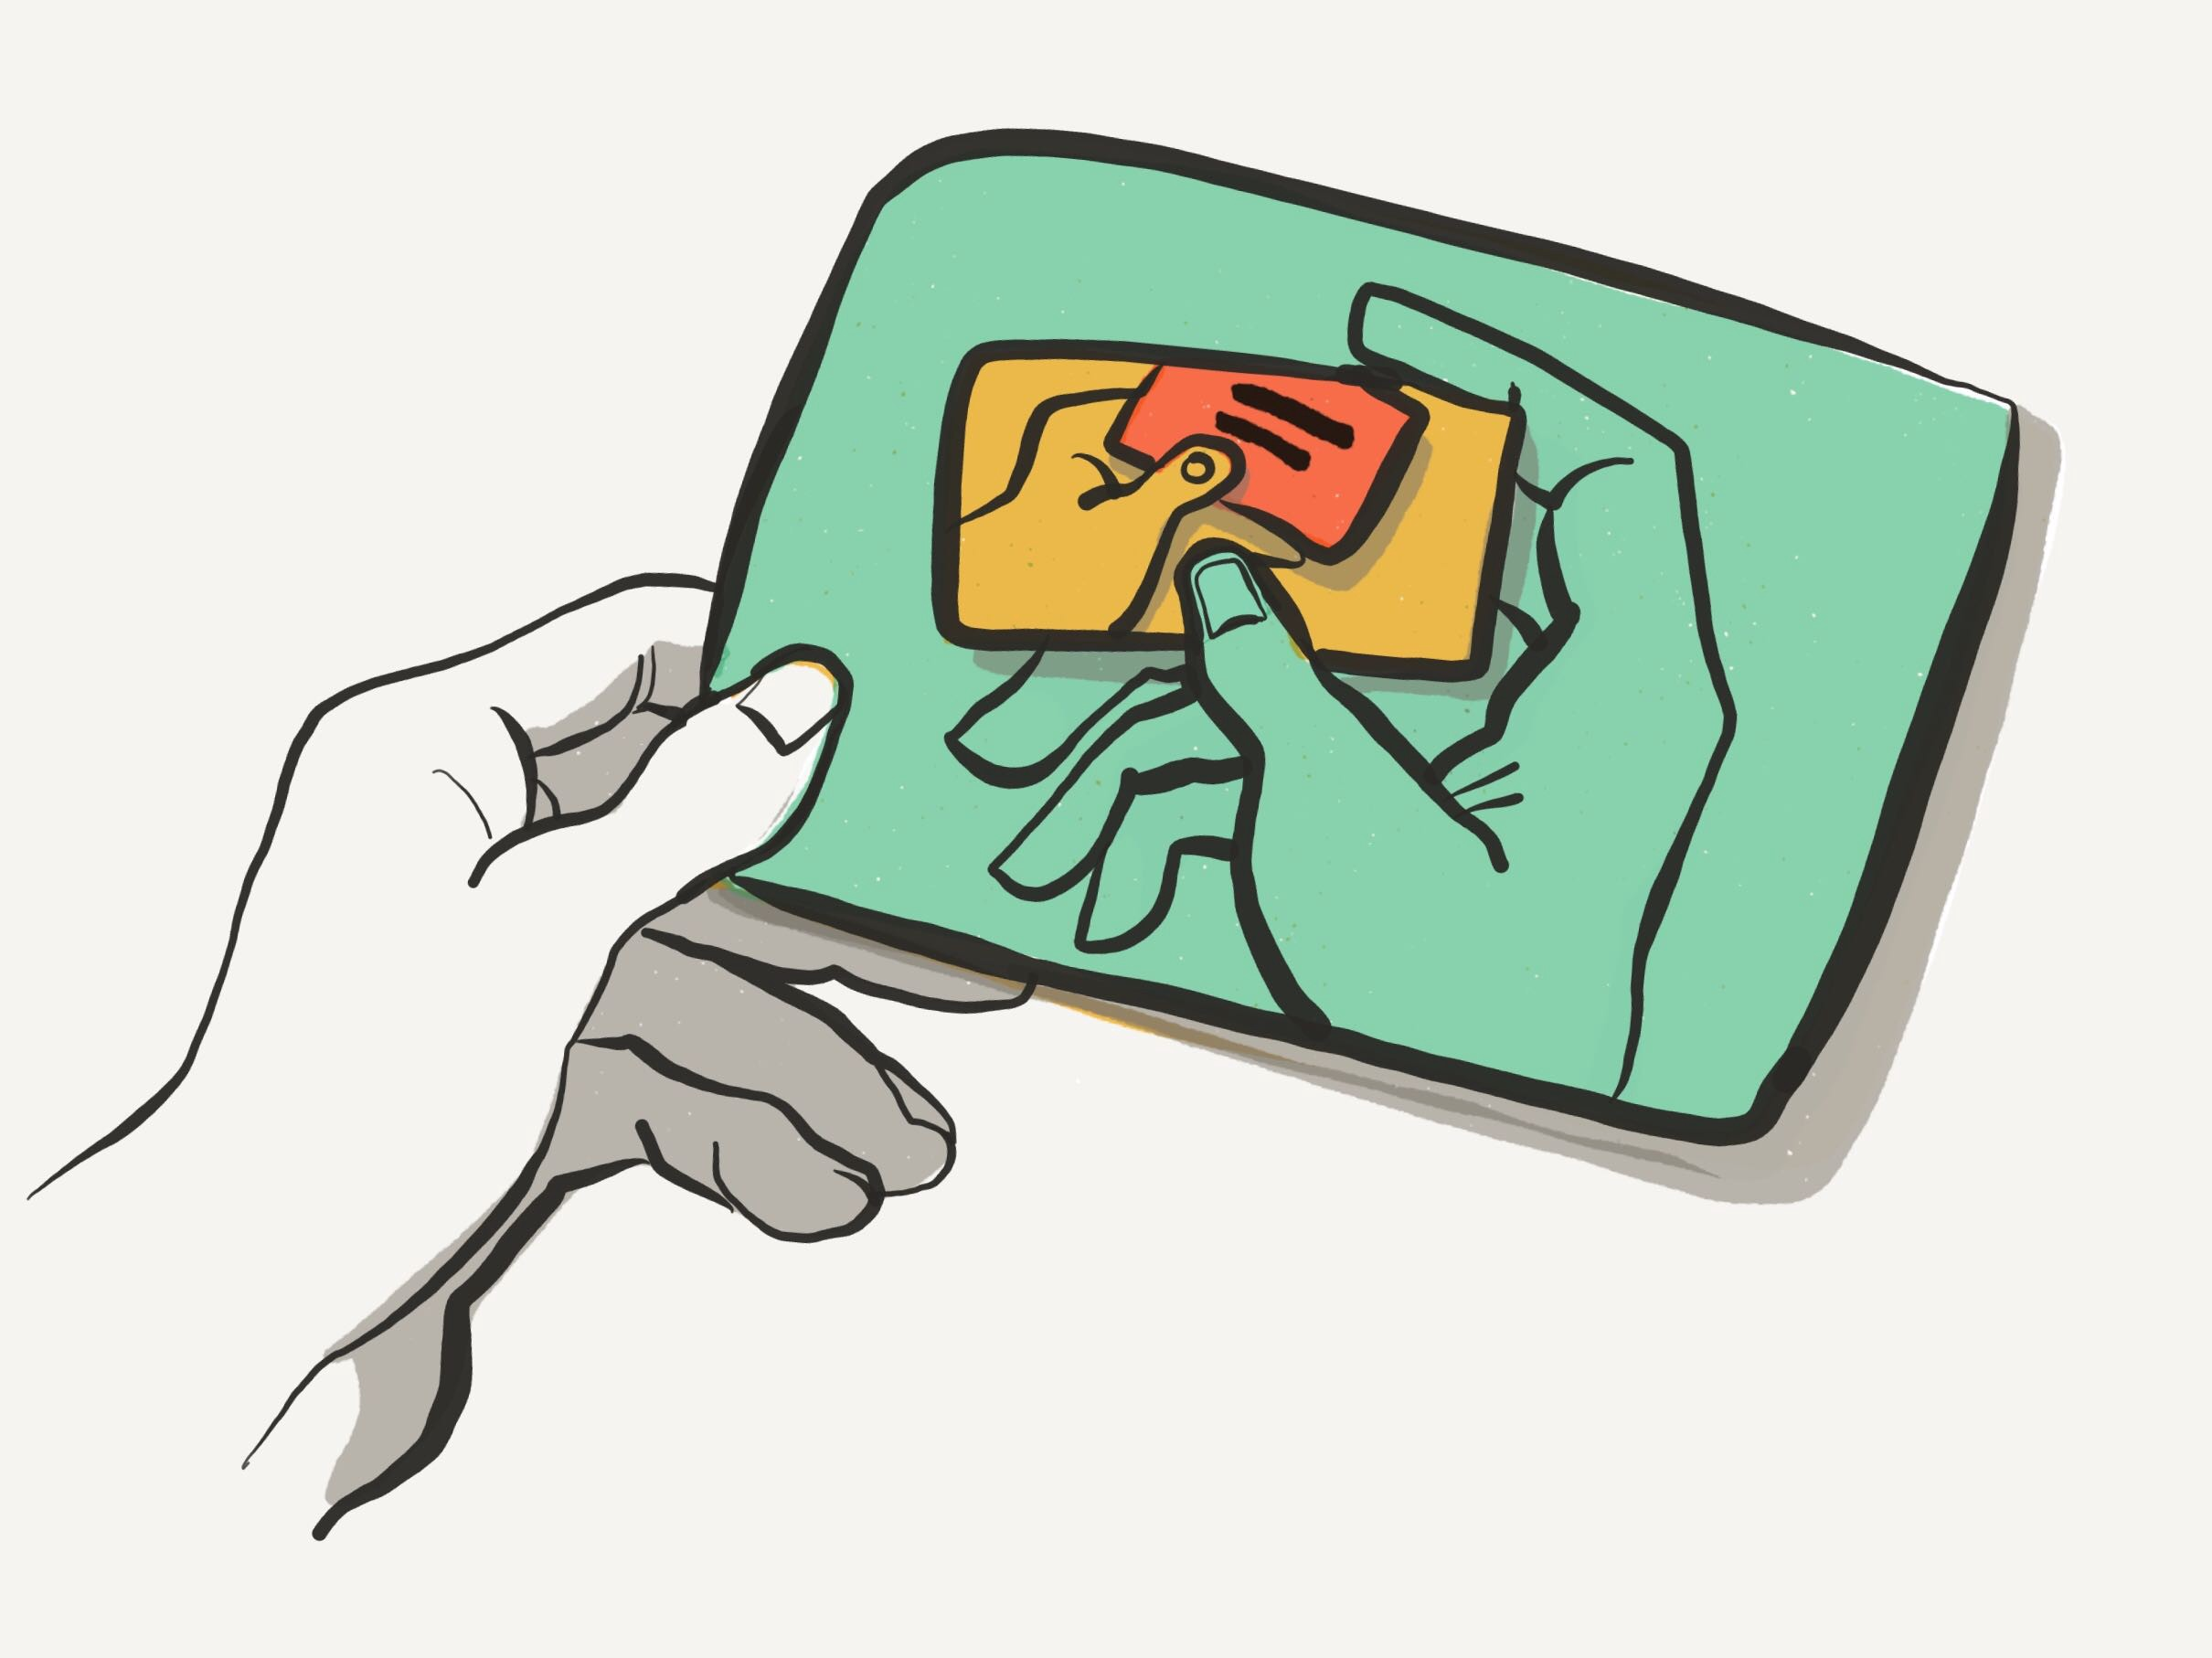 Illustration of a flashcard within a flashcard within a flashcard.